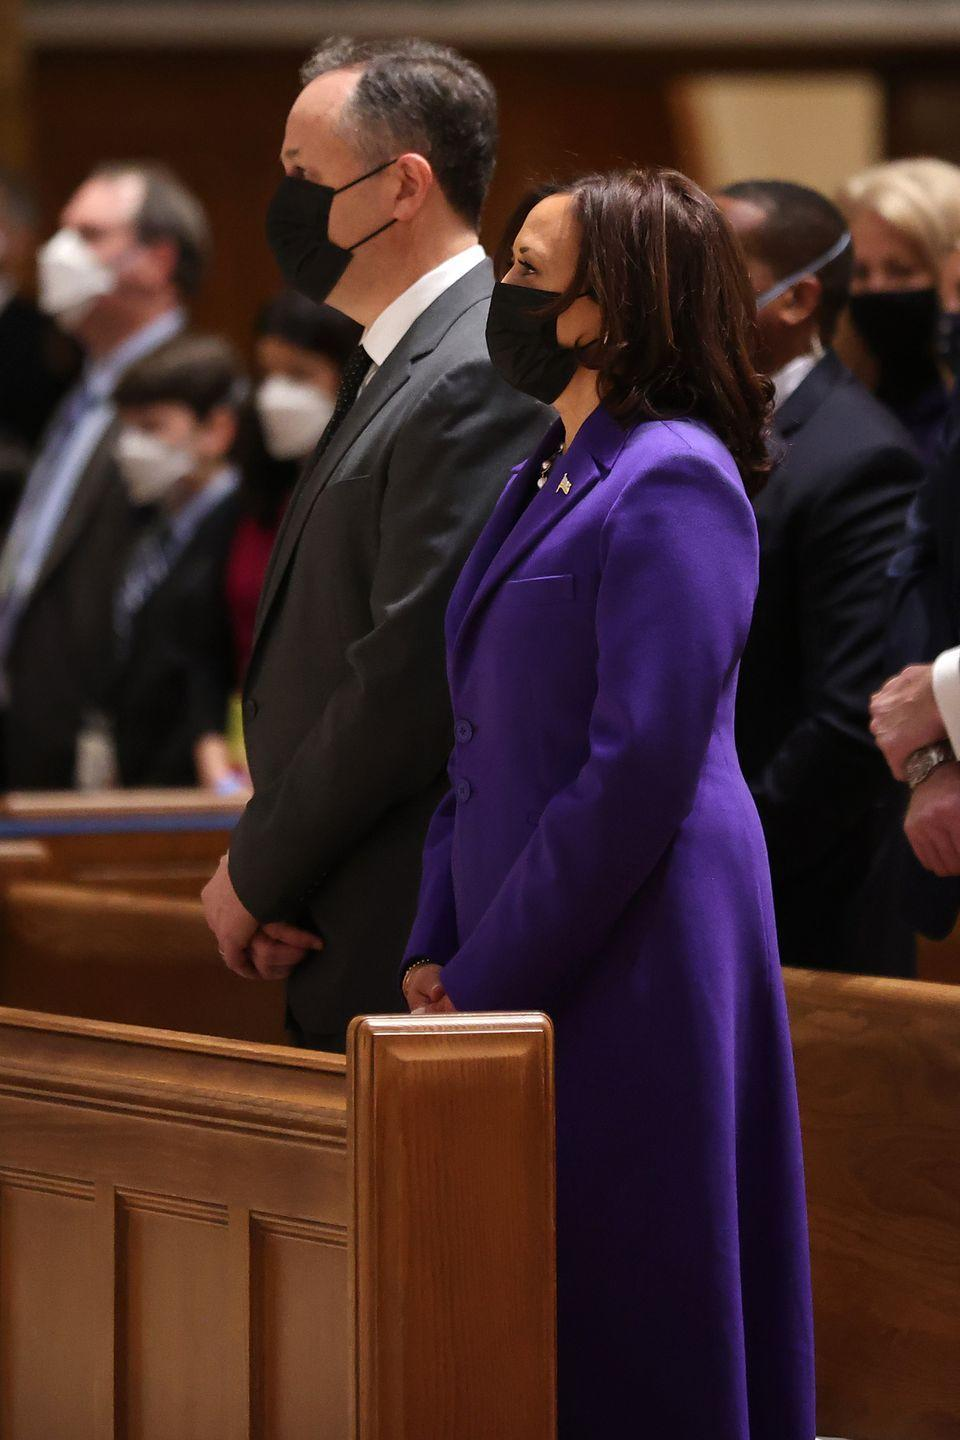 """<p>Vice President-elect Kamala Harris and her husband, Doug Emhoff, attend services at the Cathedral of St. Matthew the Apostle with congressional leaders prior to the 59th presidential inauguration ceremony. Harris wears a purple coat <a href=""""https://www.harpersbazaar.com/celebrity/latest/a35264948/kamala-harris-christopher-john-rogers-inauguration/"""" rel=""""nofollow noopener"""" target=""""_blank"""" data-ylk=""""slk:designed by Christopher John Rogers"""" class=""""link rapid-noclick-resp"""">designed by Christopher John Rogers</a>. </p>"""